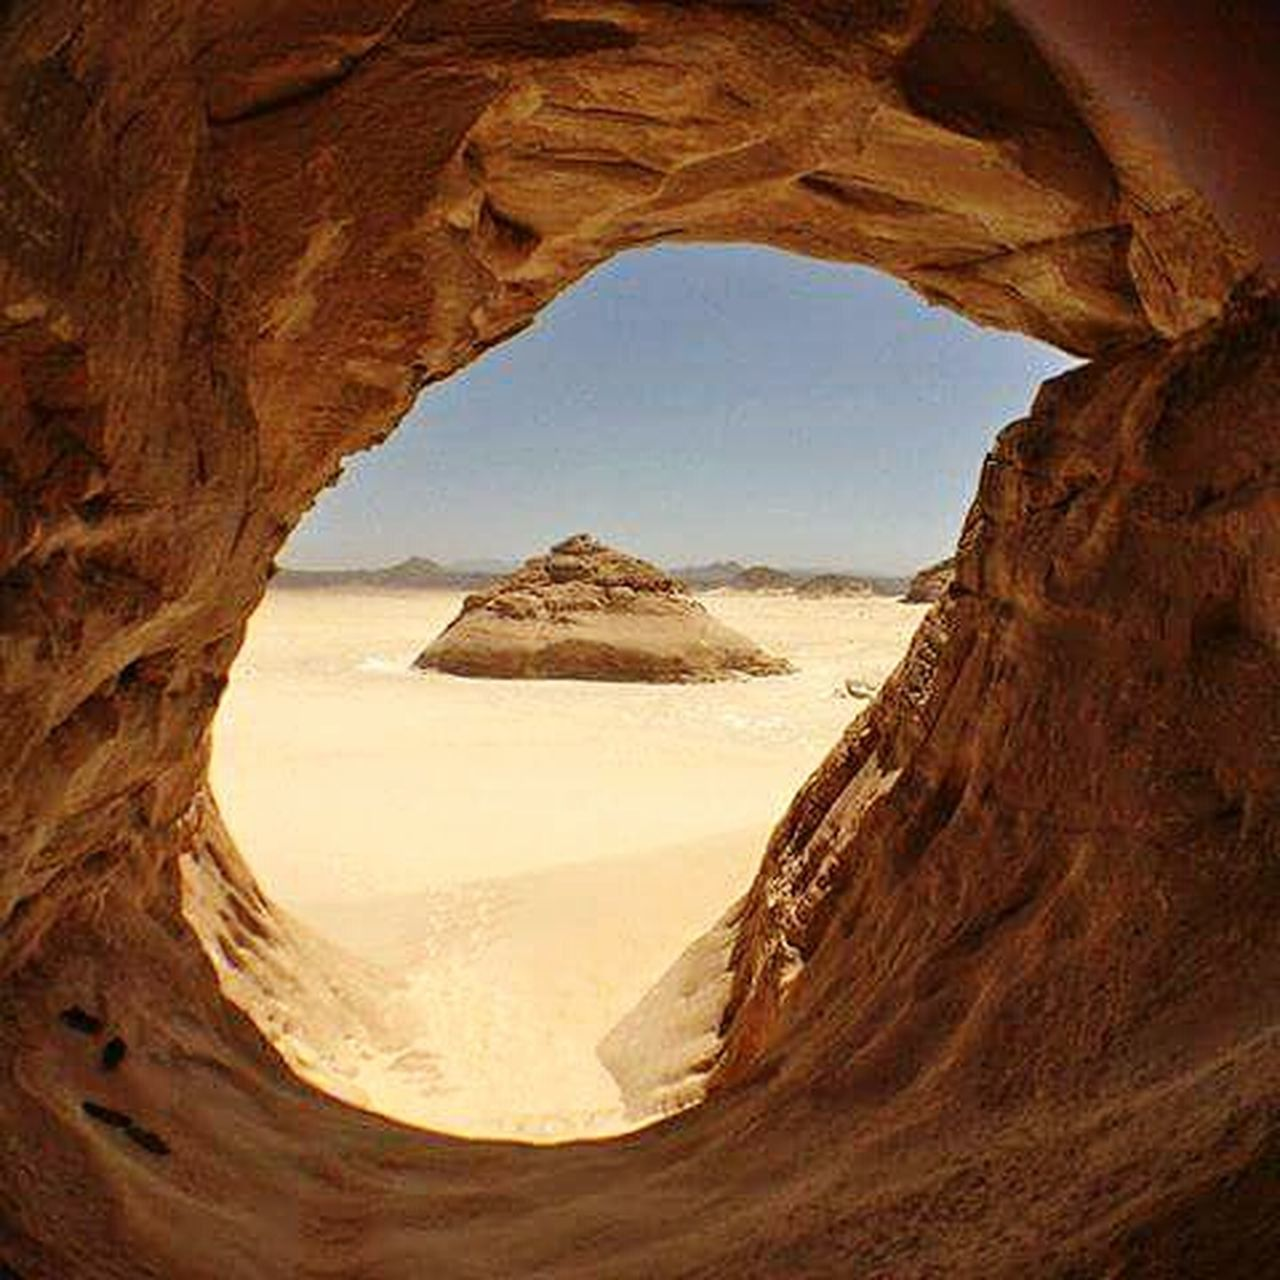 rock formation, geology, rock - object, physical geography, nature, sandstone, desert, natural arch, canyon, beauty in nature, tranquility, extreme terrain, arid climate, travel destinations, landscape, travel, scenics, no people, day, red, sunlight, cliff, clear sky, outdoors, cave, sky